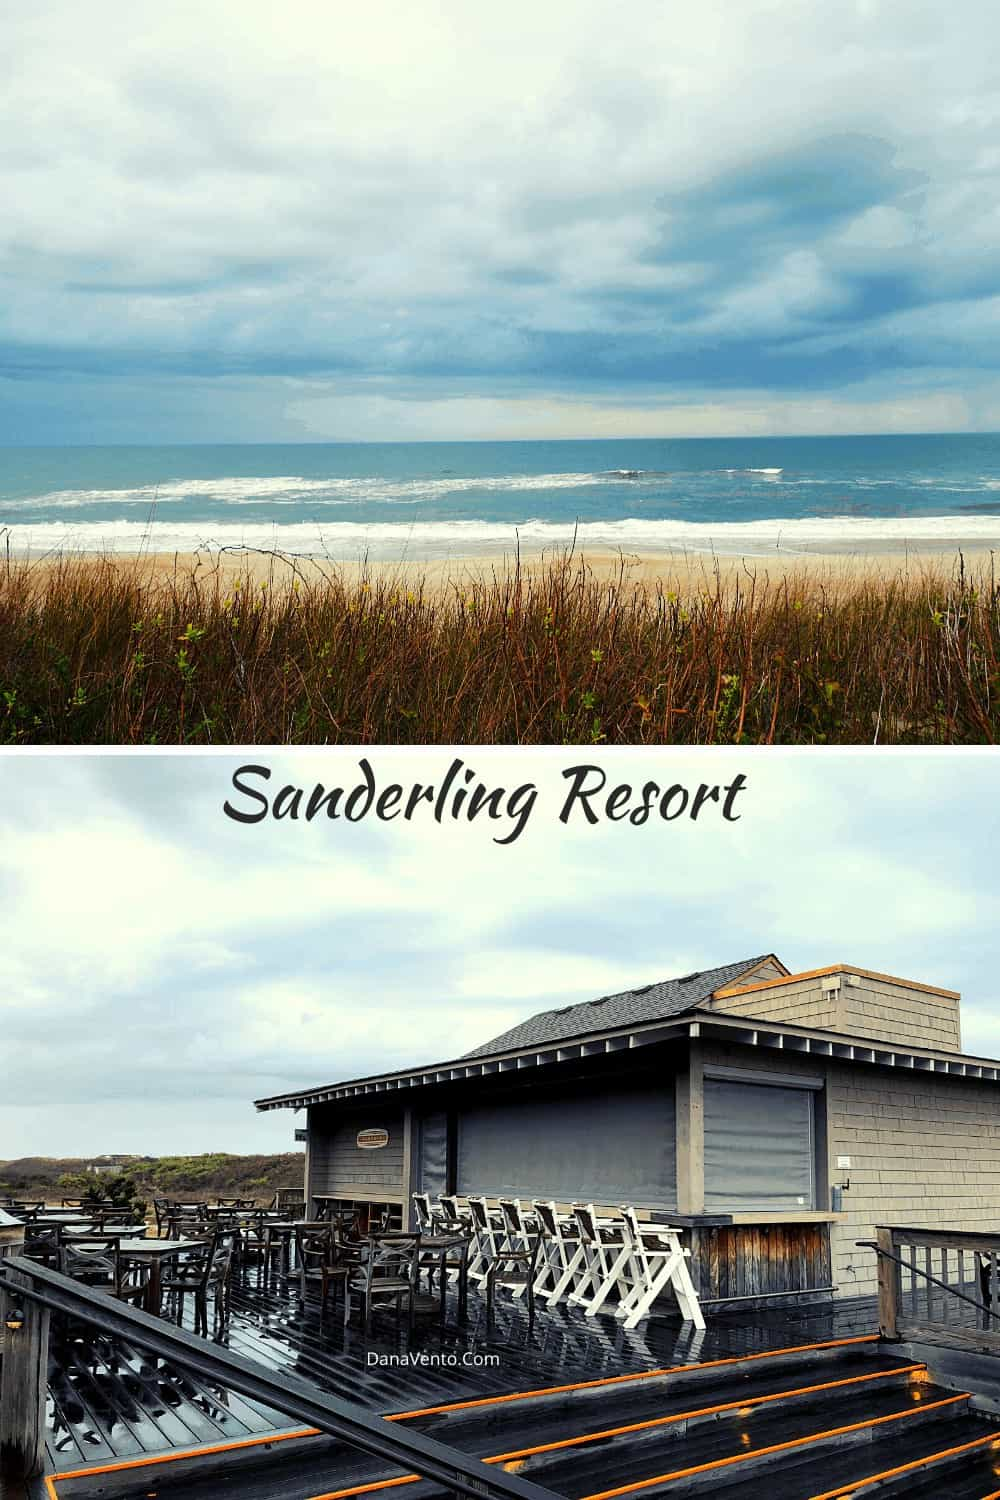 Ocean Sanderling Resort